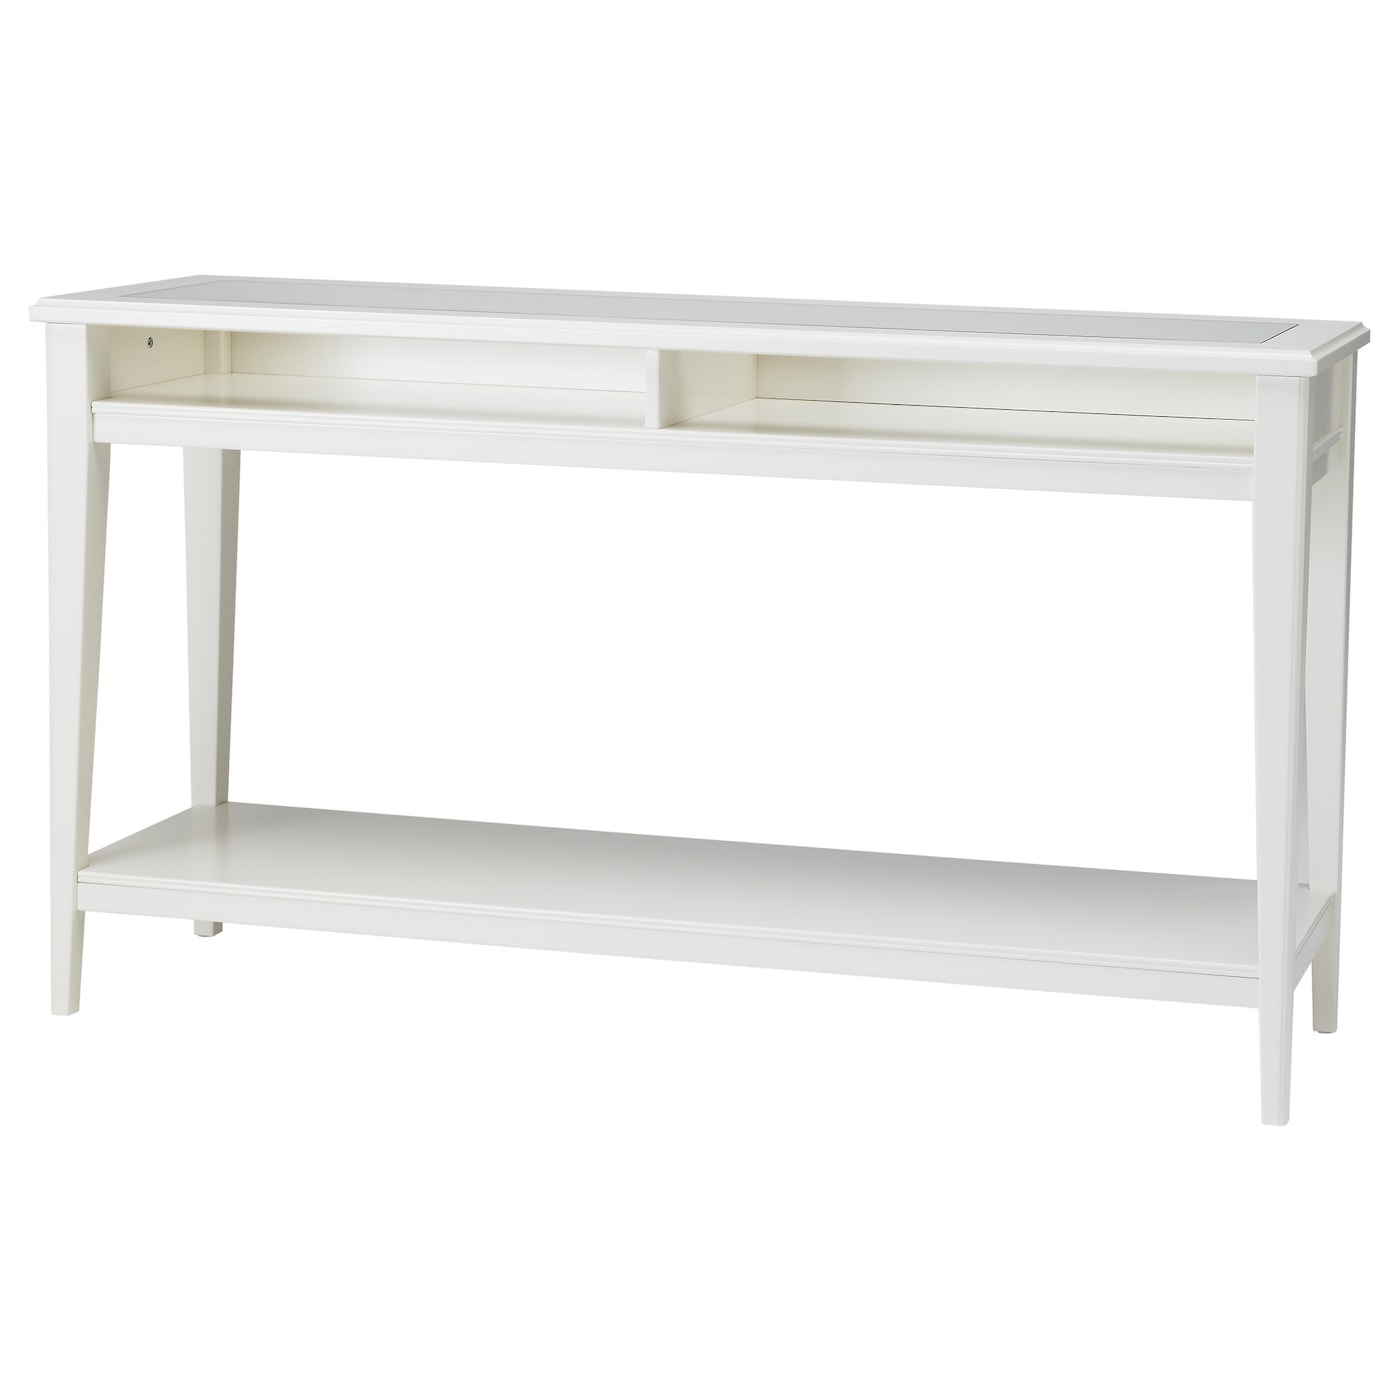 Liatorp console table white glass 133x37 cm ikea for White and glass console table